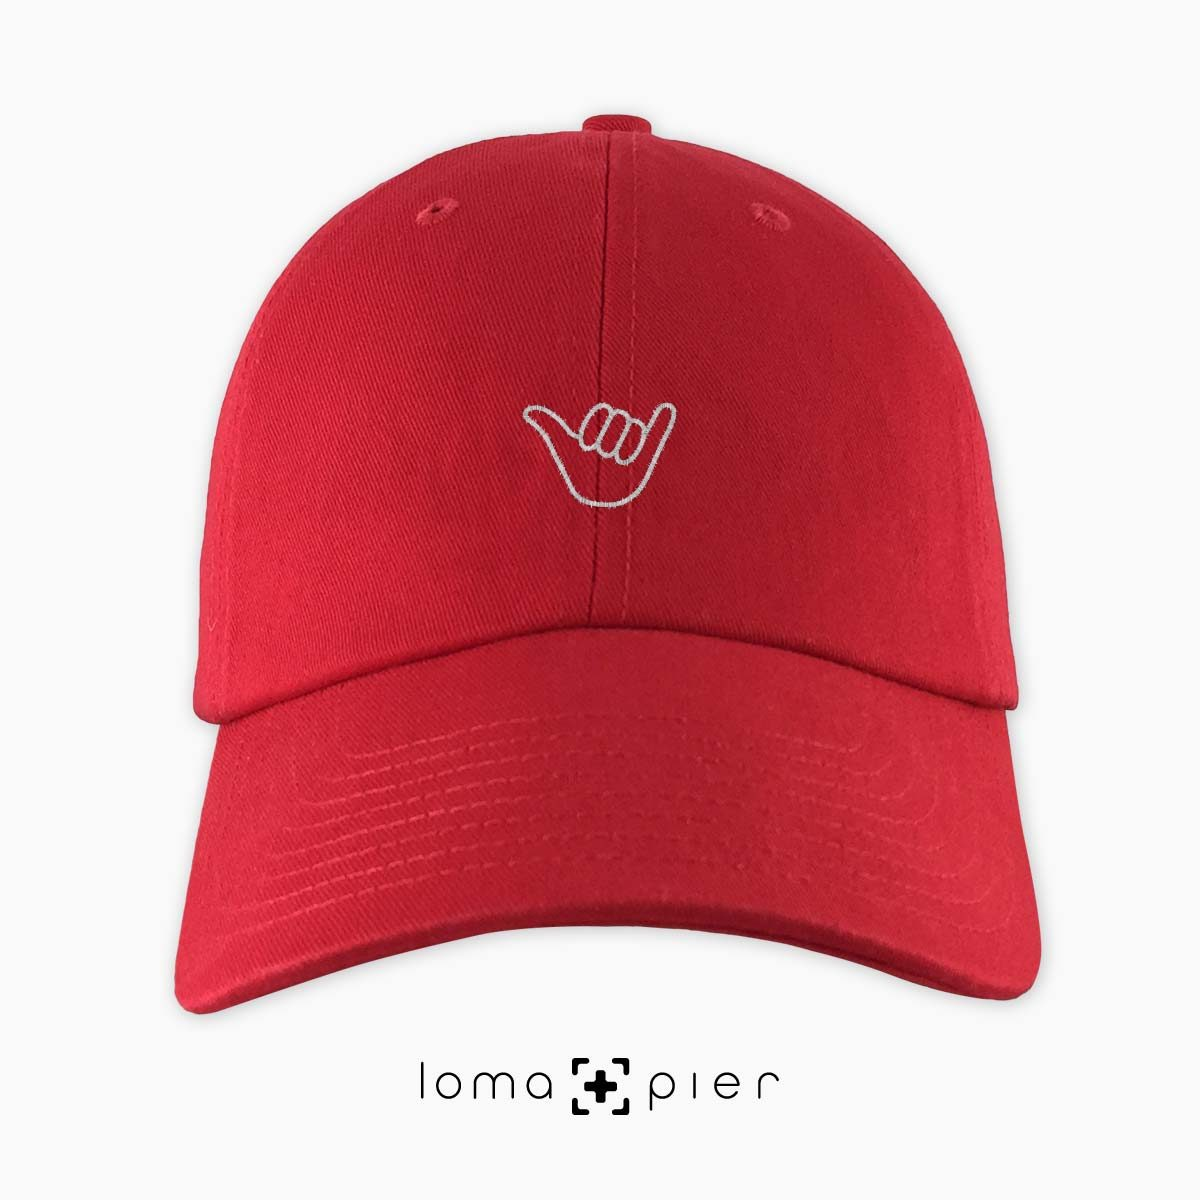 HANG LOOSE icon embroidered on a red unstructured dad hat by loma+pier hat store made in the USA